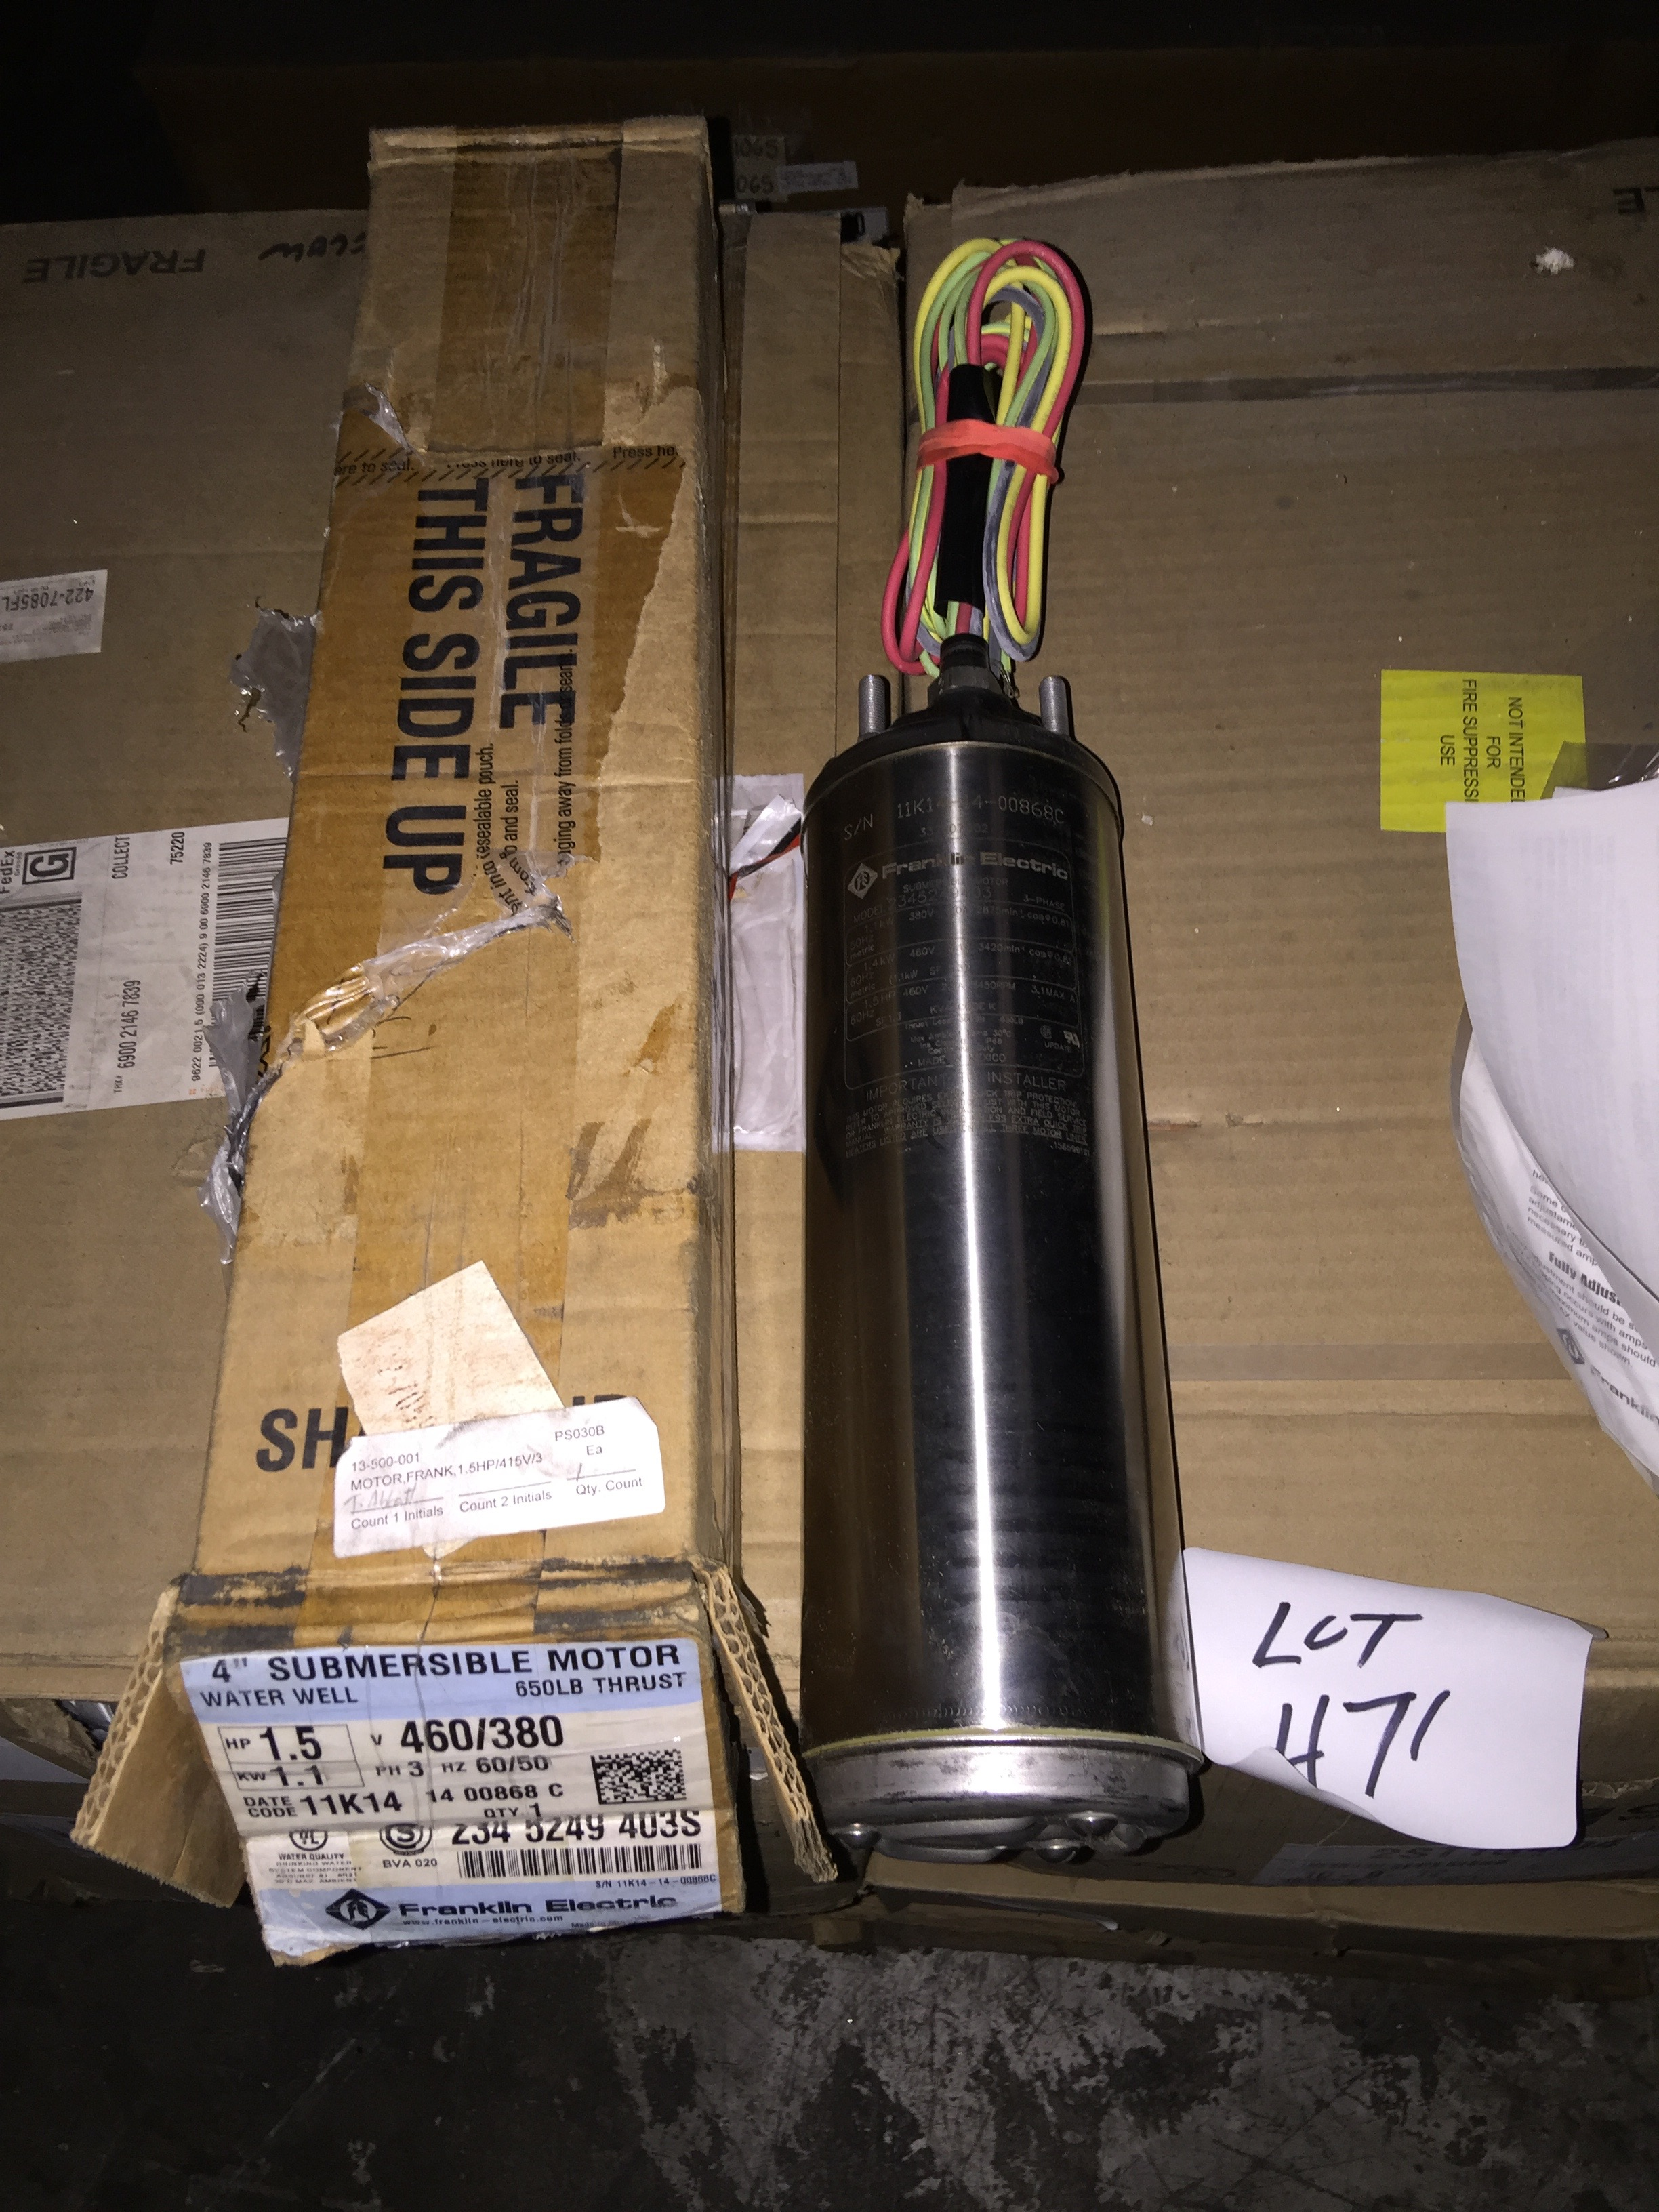 Franklin Electric 4 Submersible Motor 1 5 Hp 460 380